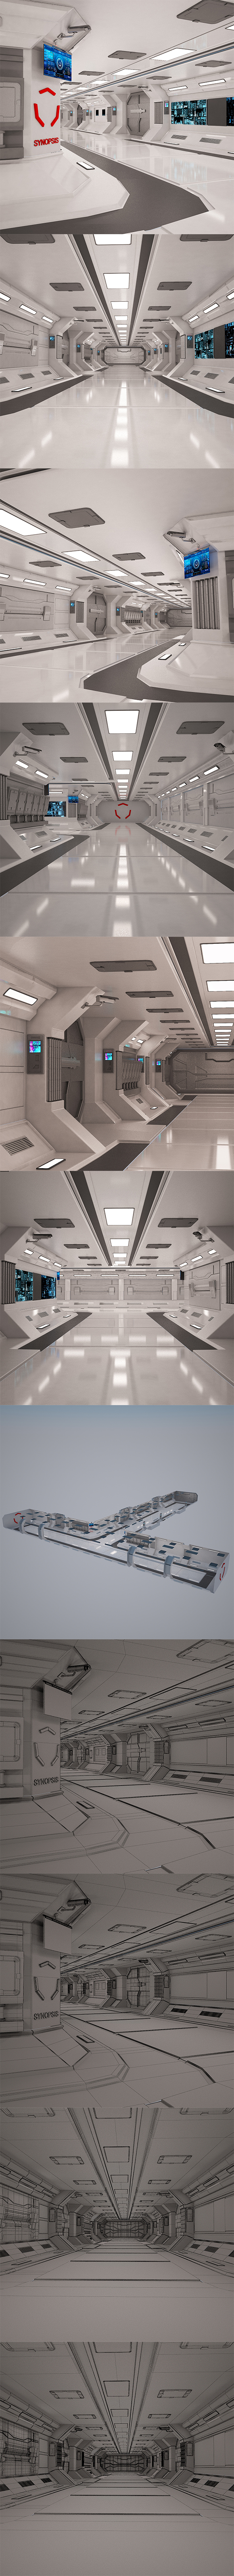 Sci-Fi Spaceship Corridor - 3DOcean Item for Sale